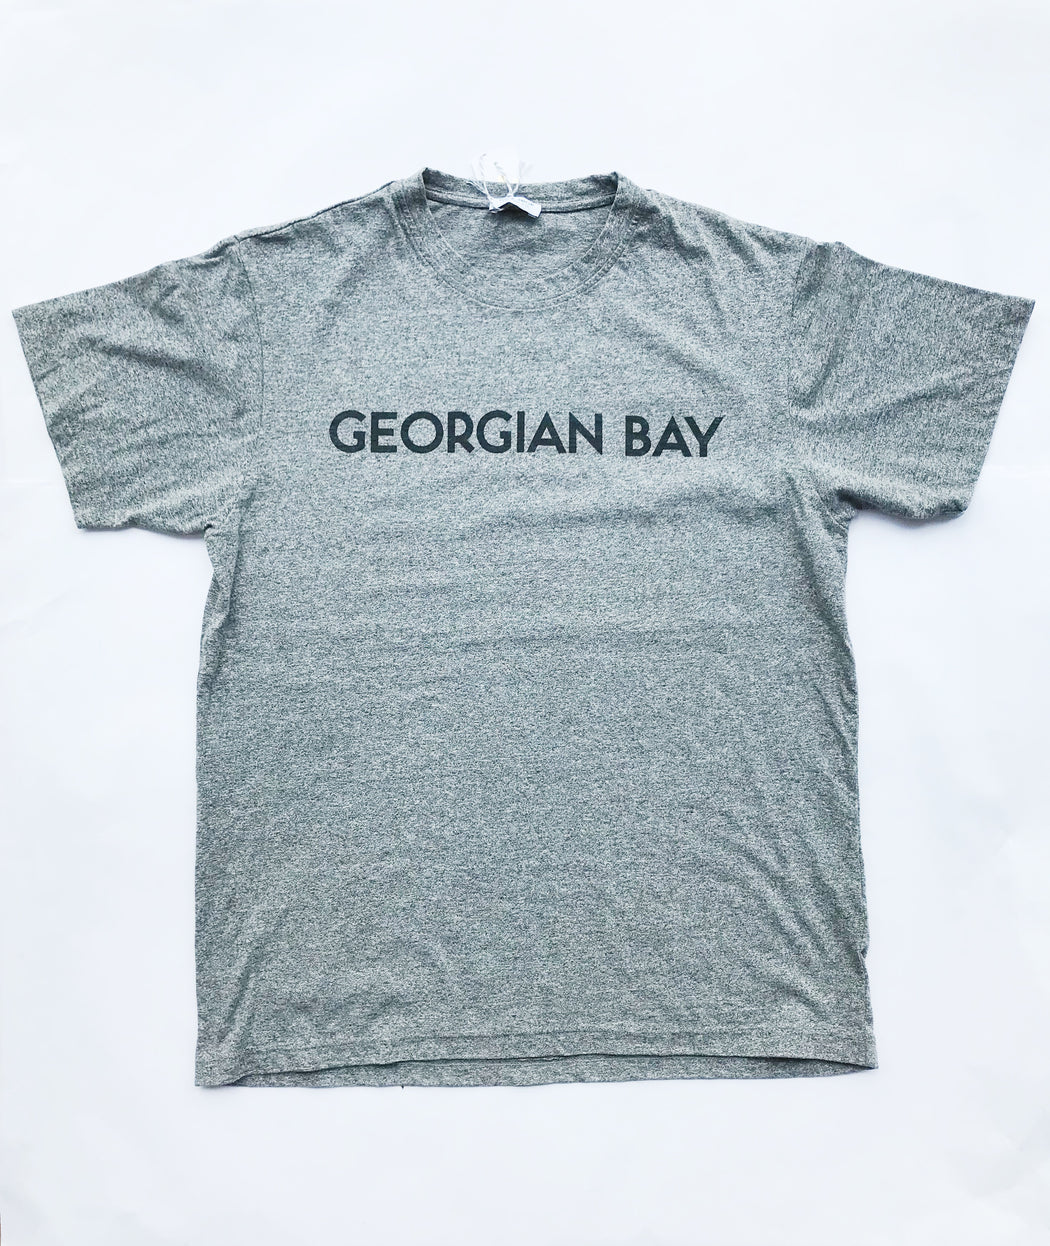 Georgian Bay Men's Tee - Salt and Pepper